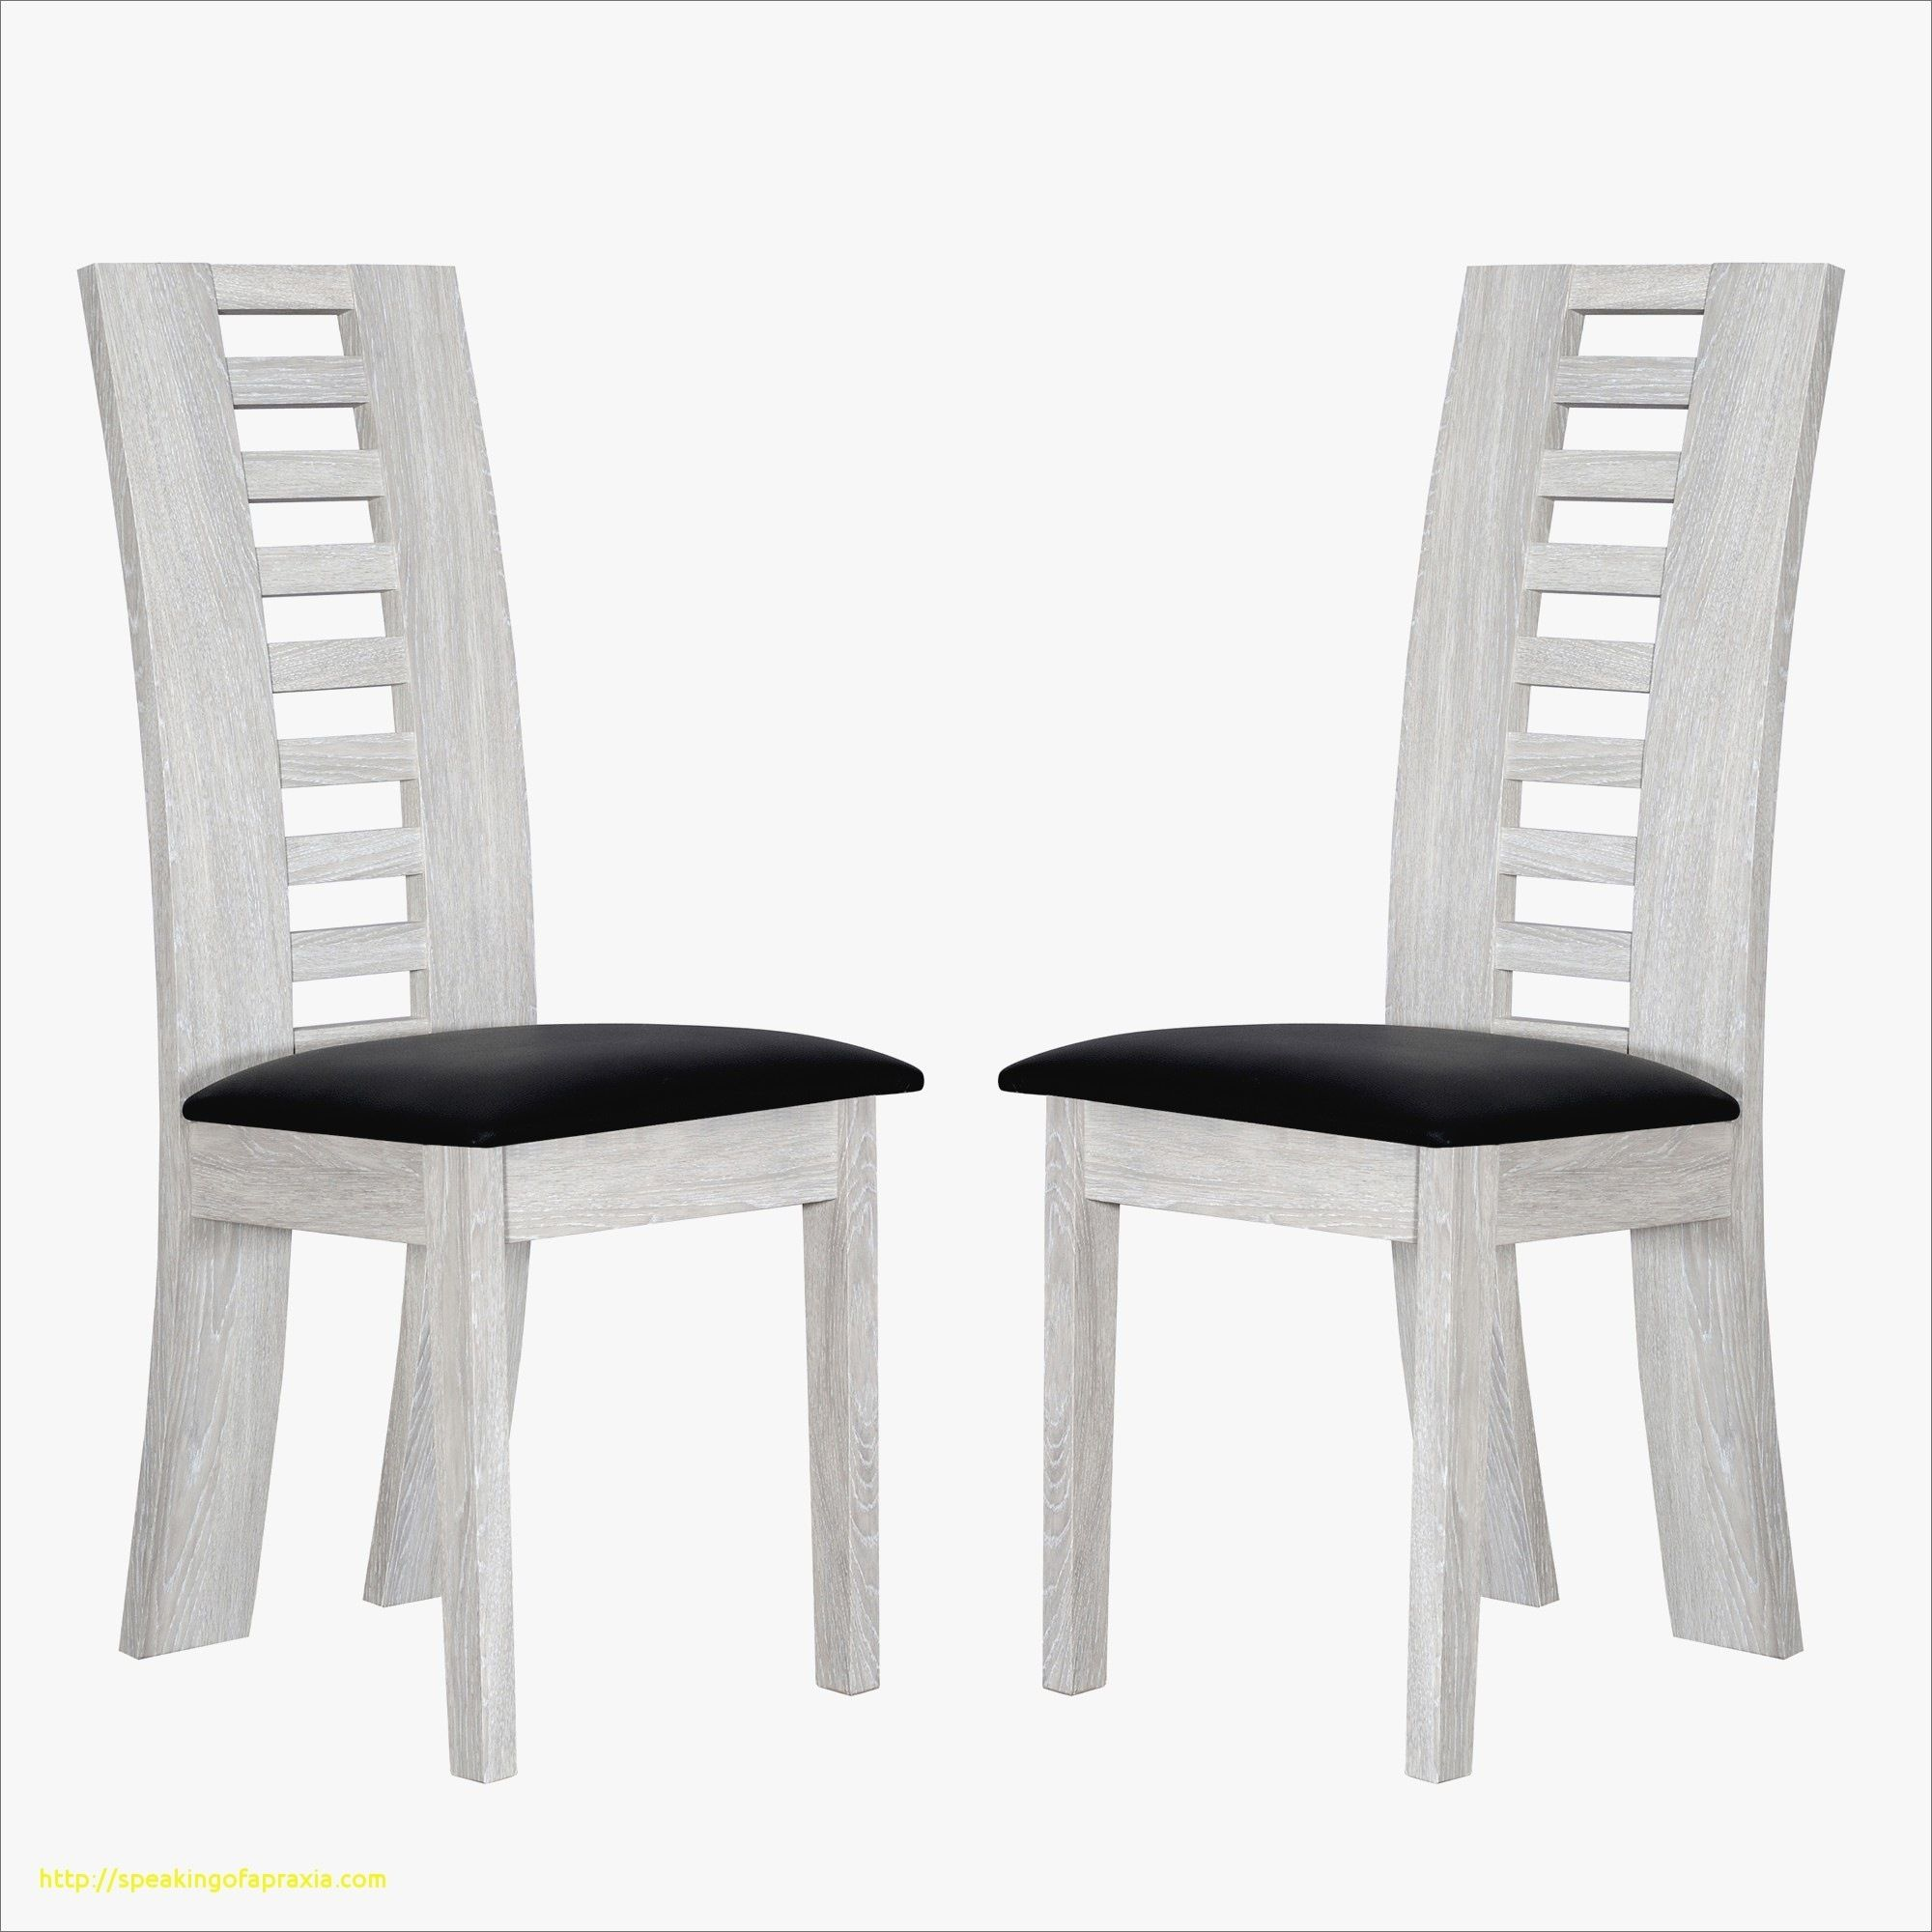 12 Pleasant Kitchen Table And Chairs Range Collection Chaise Salle A Manger Table Et Chaises Table Et Chaises De Jardin